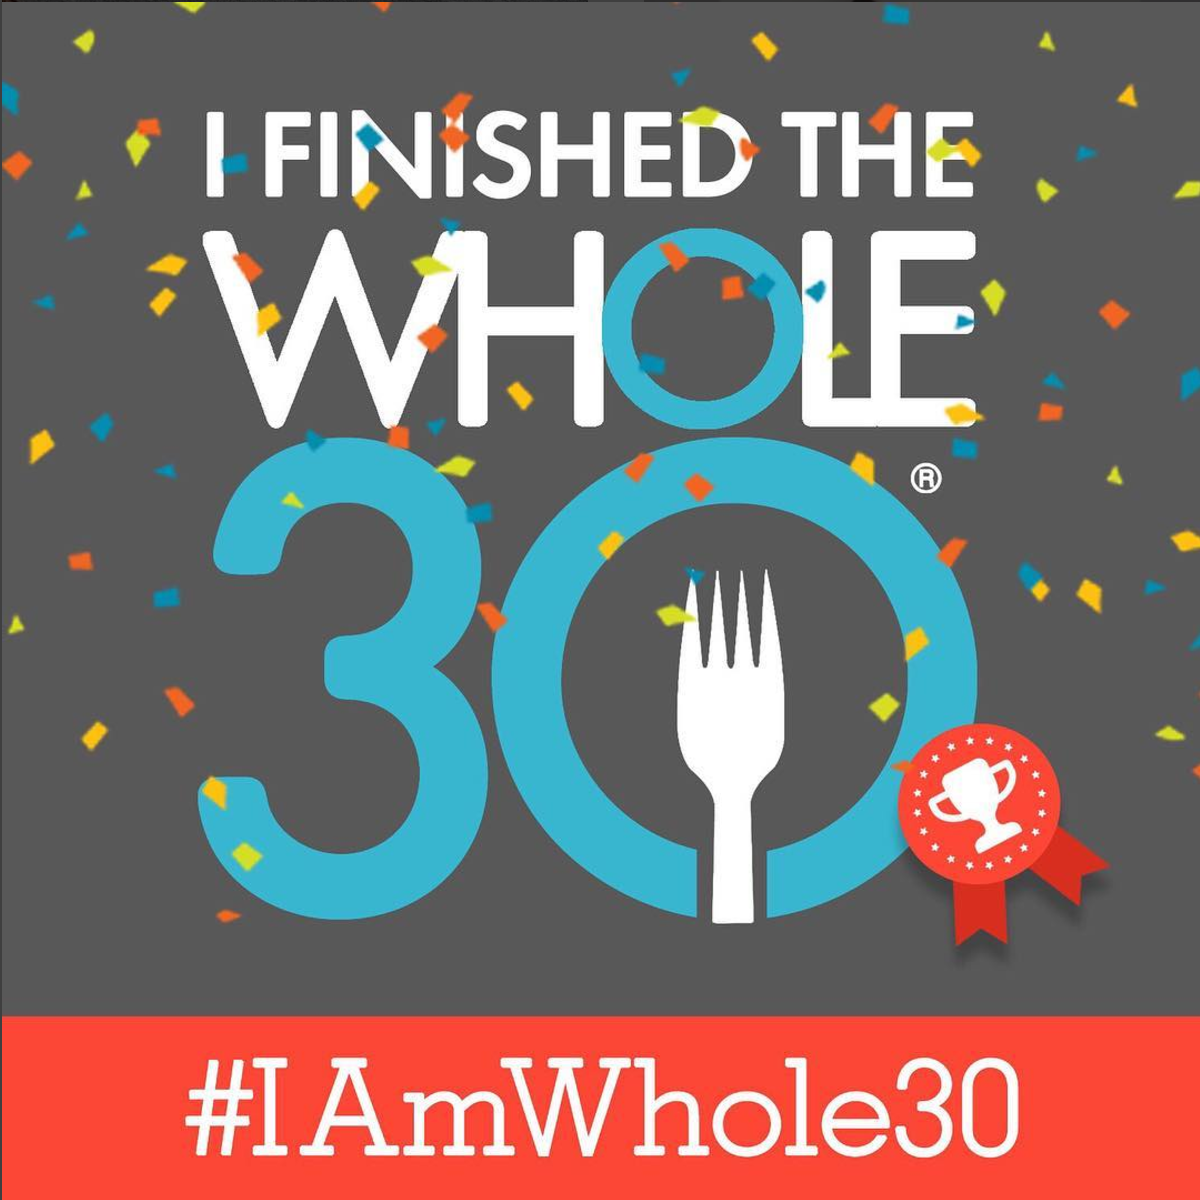 In short, Whole30 is considered an elimination diet or reset. You eliminate  a lengthy list of foods (alcohol, grains, legumes, added sugar, dairy, soy,  ...